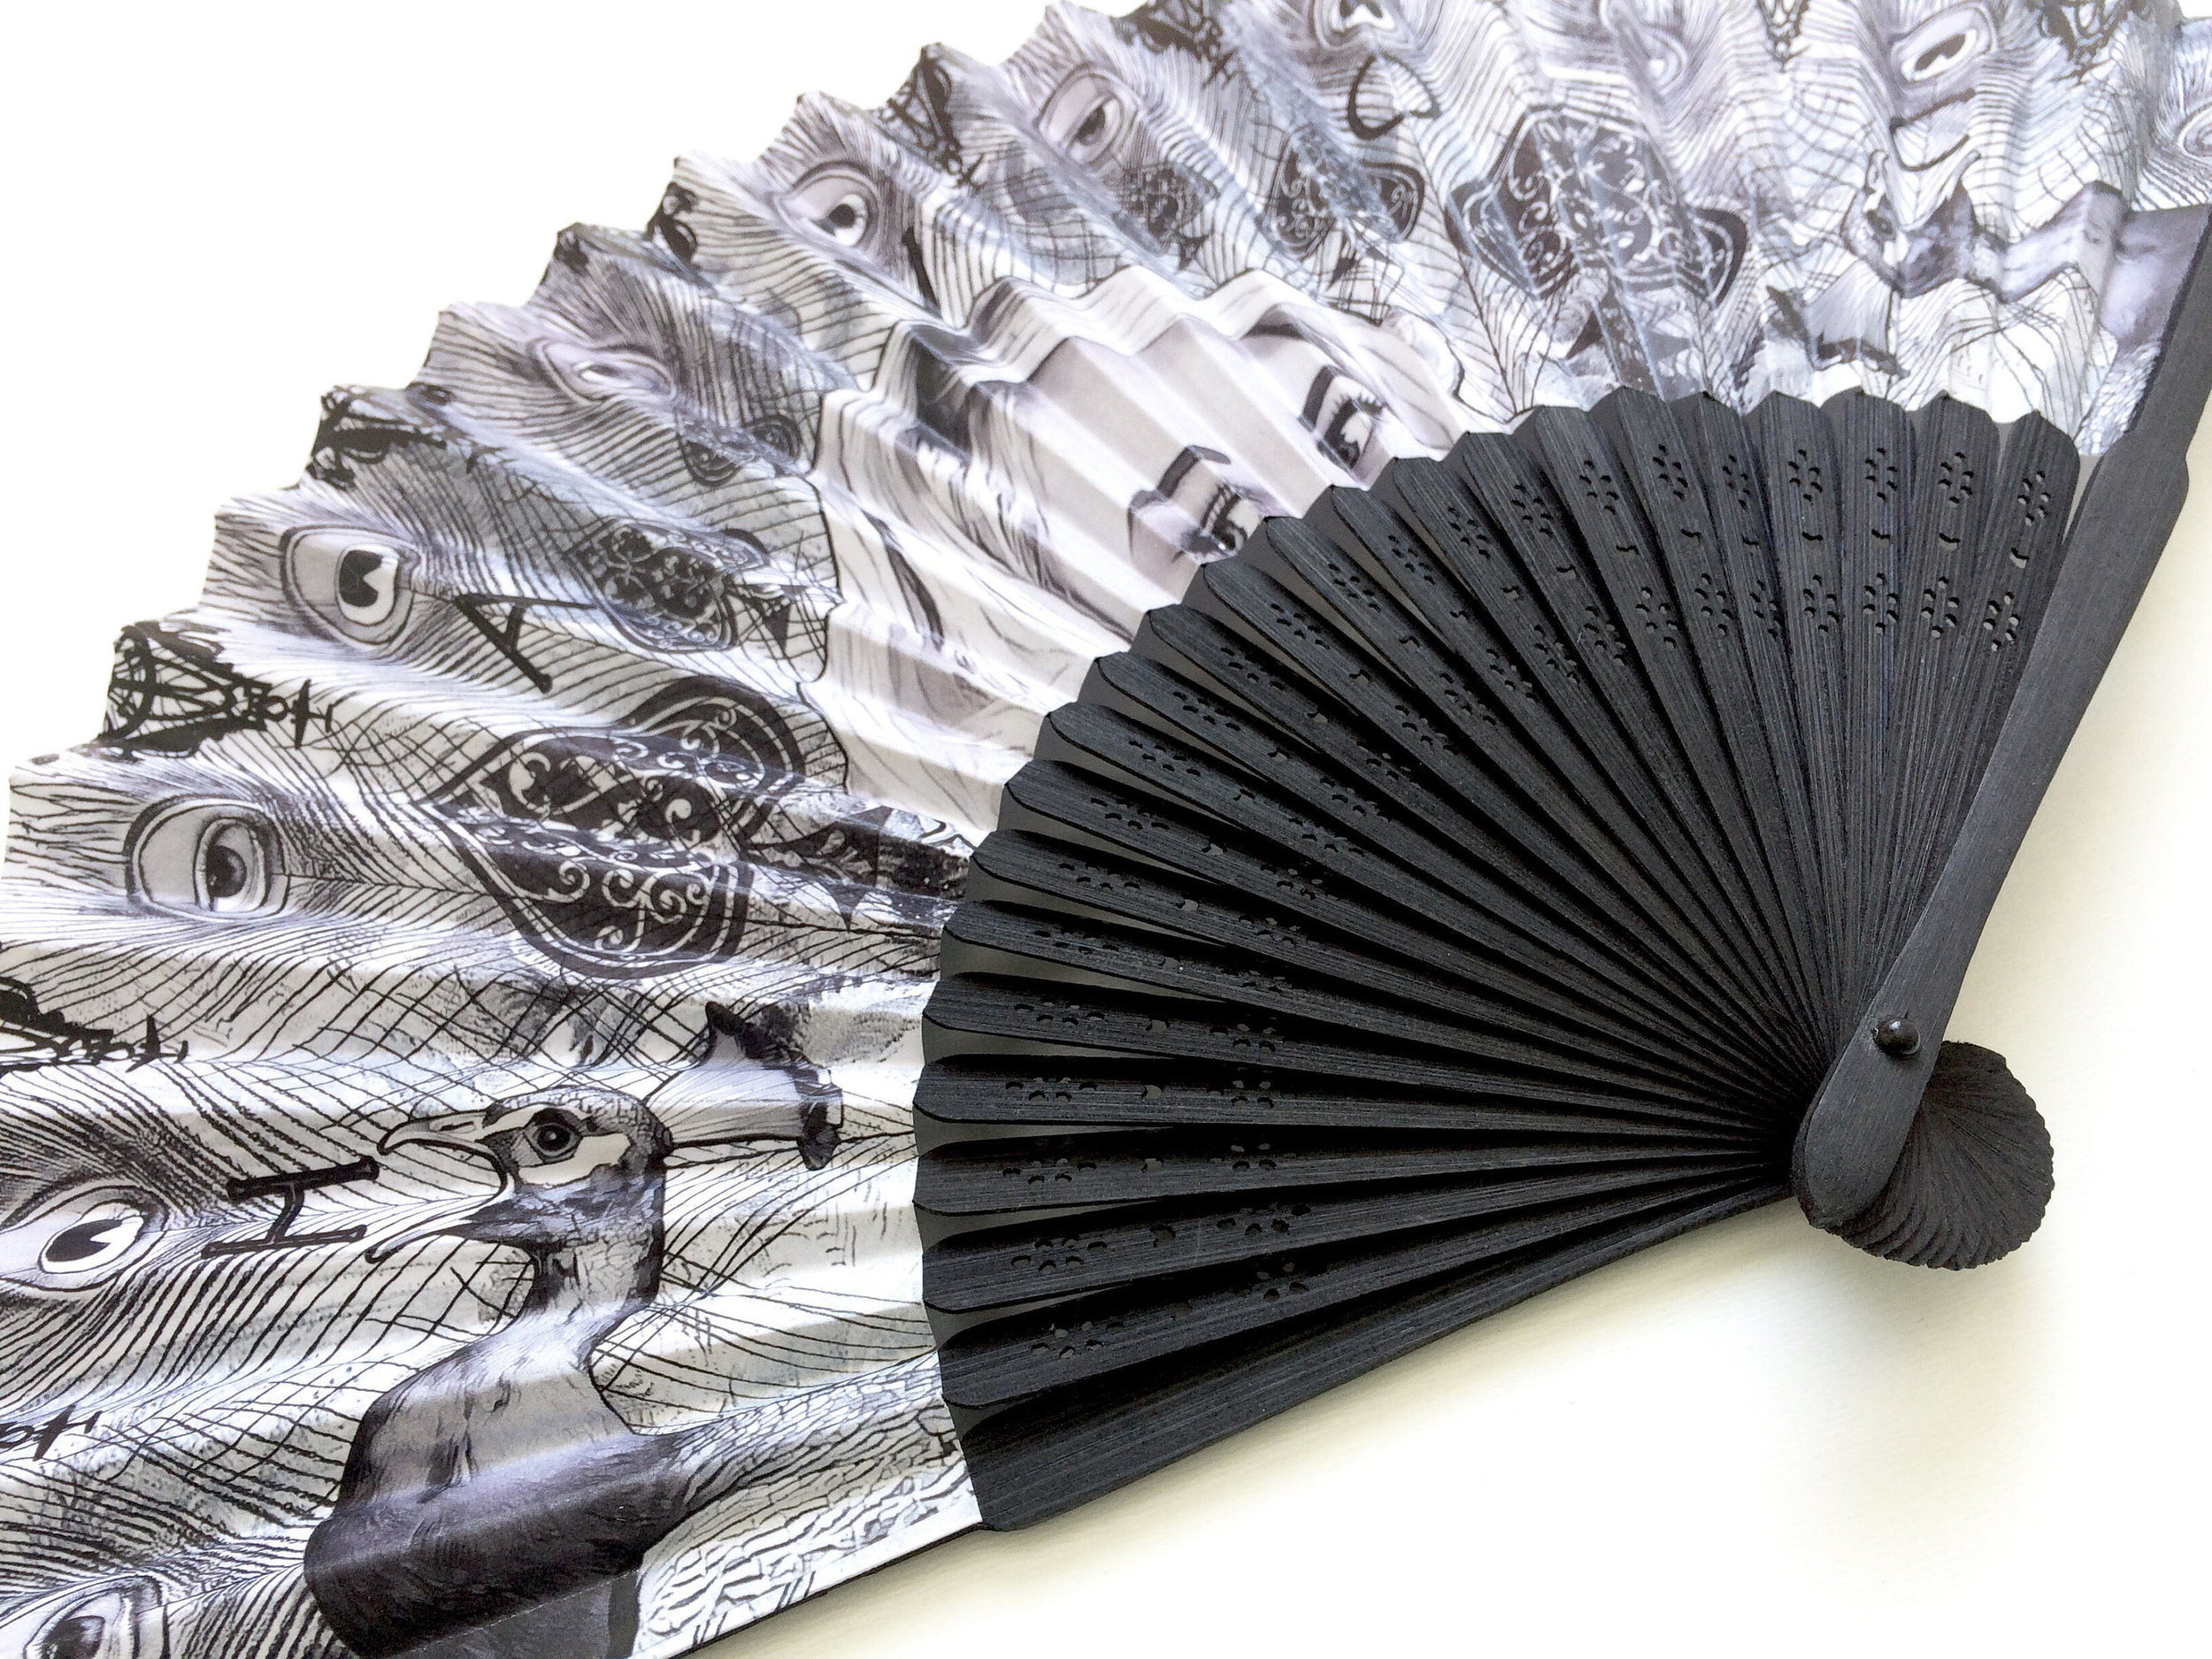 HAVOC Fan - Folding paper fan with a stylish black-stained bamboo handle featuring original digital collage artwork by Faye Havoc.